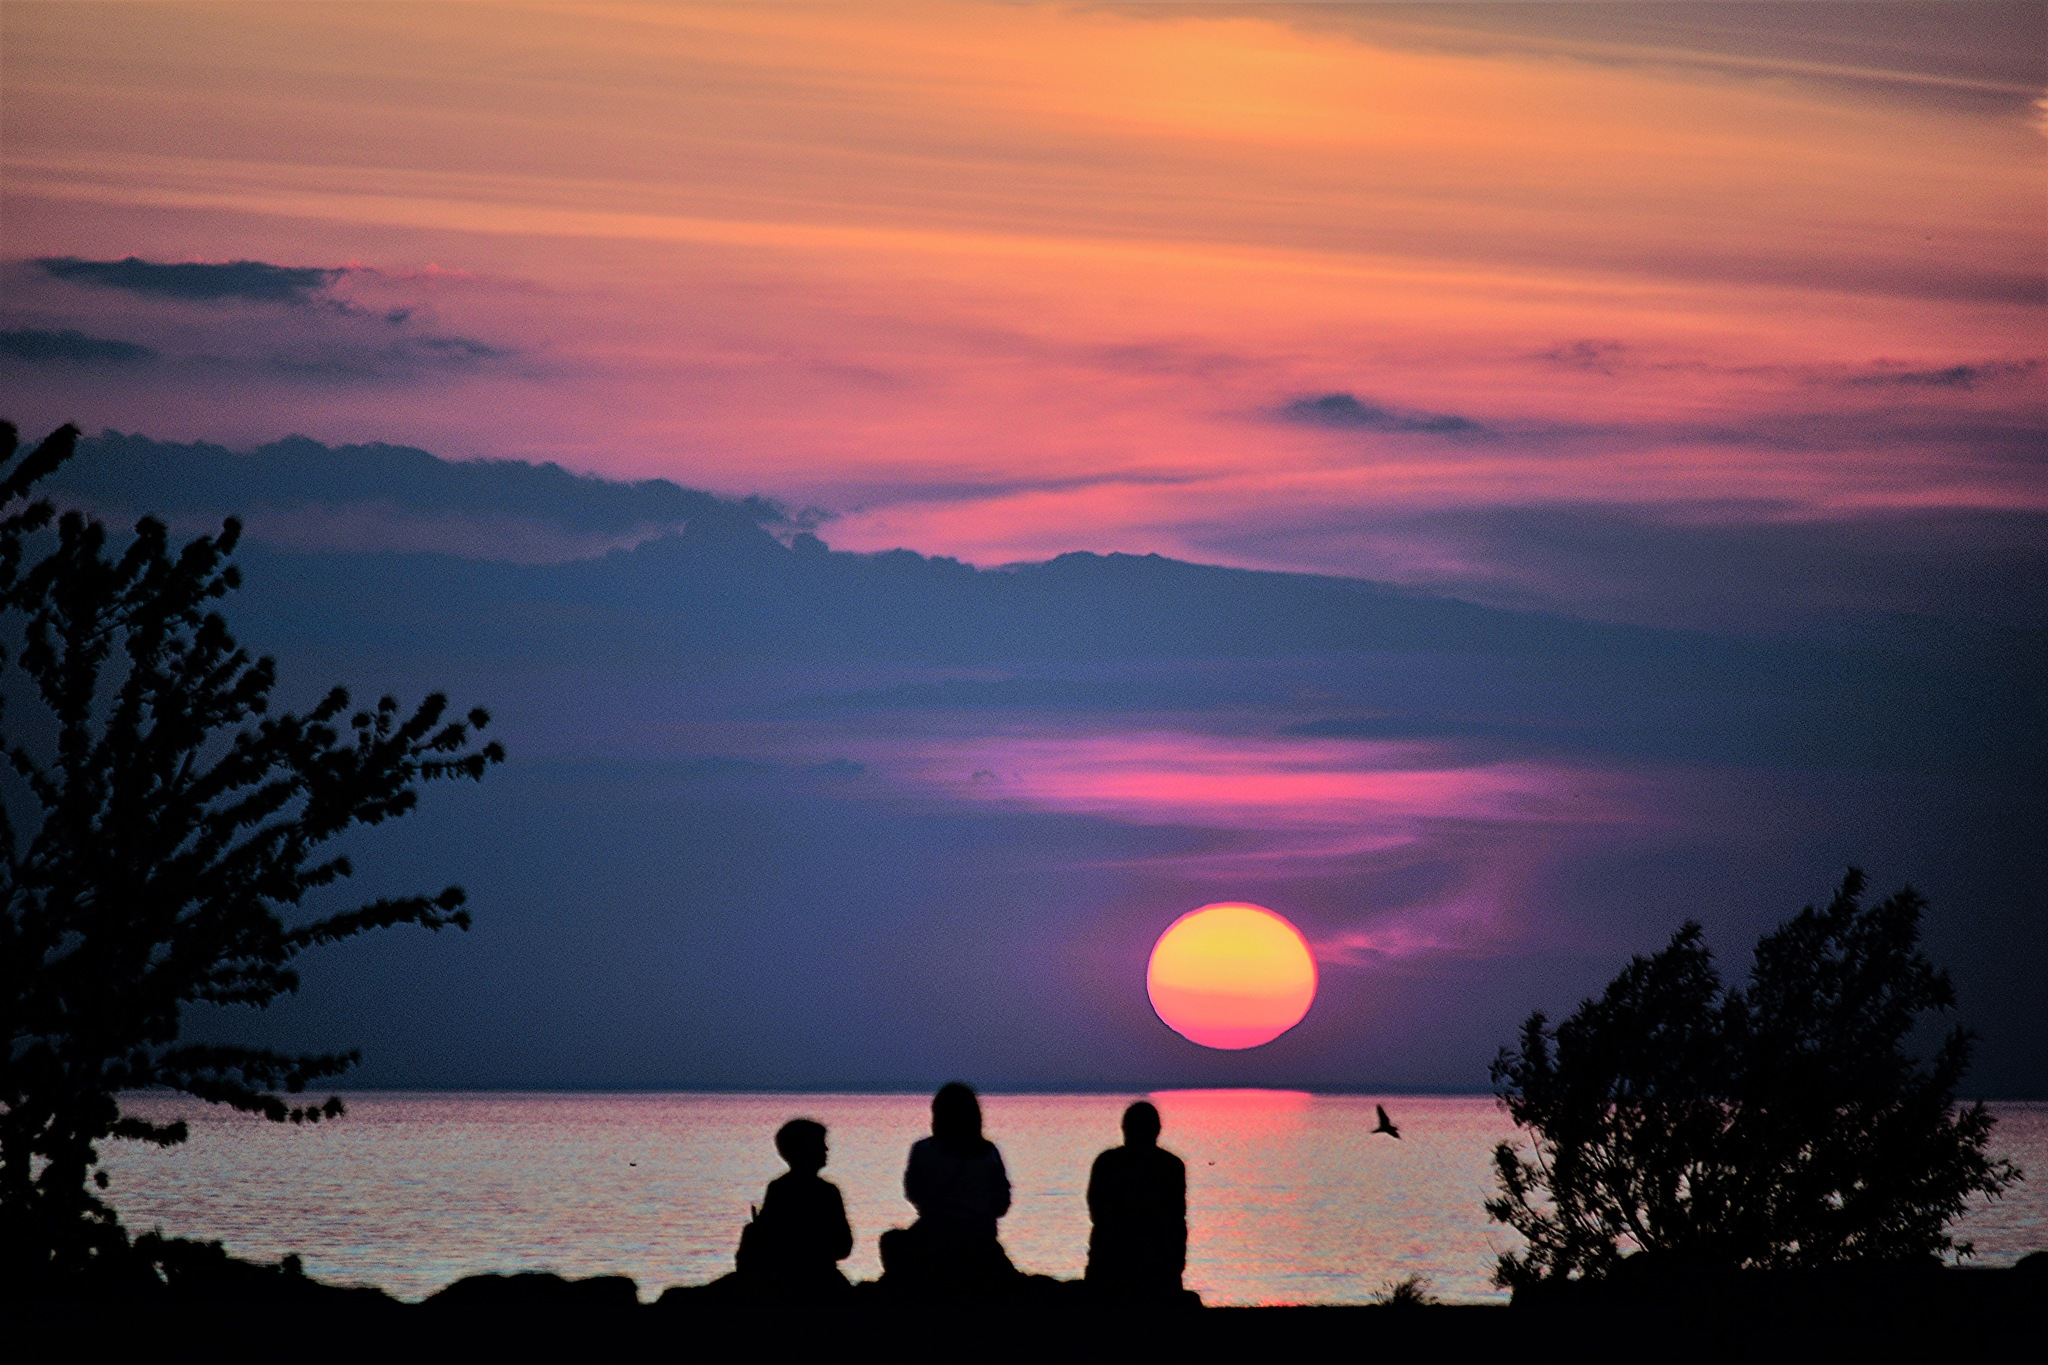 Sunset Silhouettes. by Denys Peel